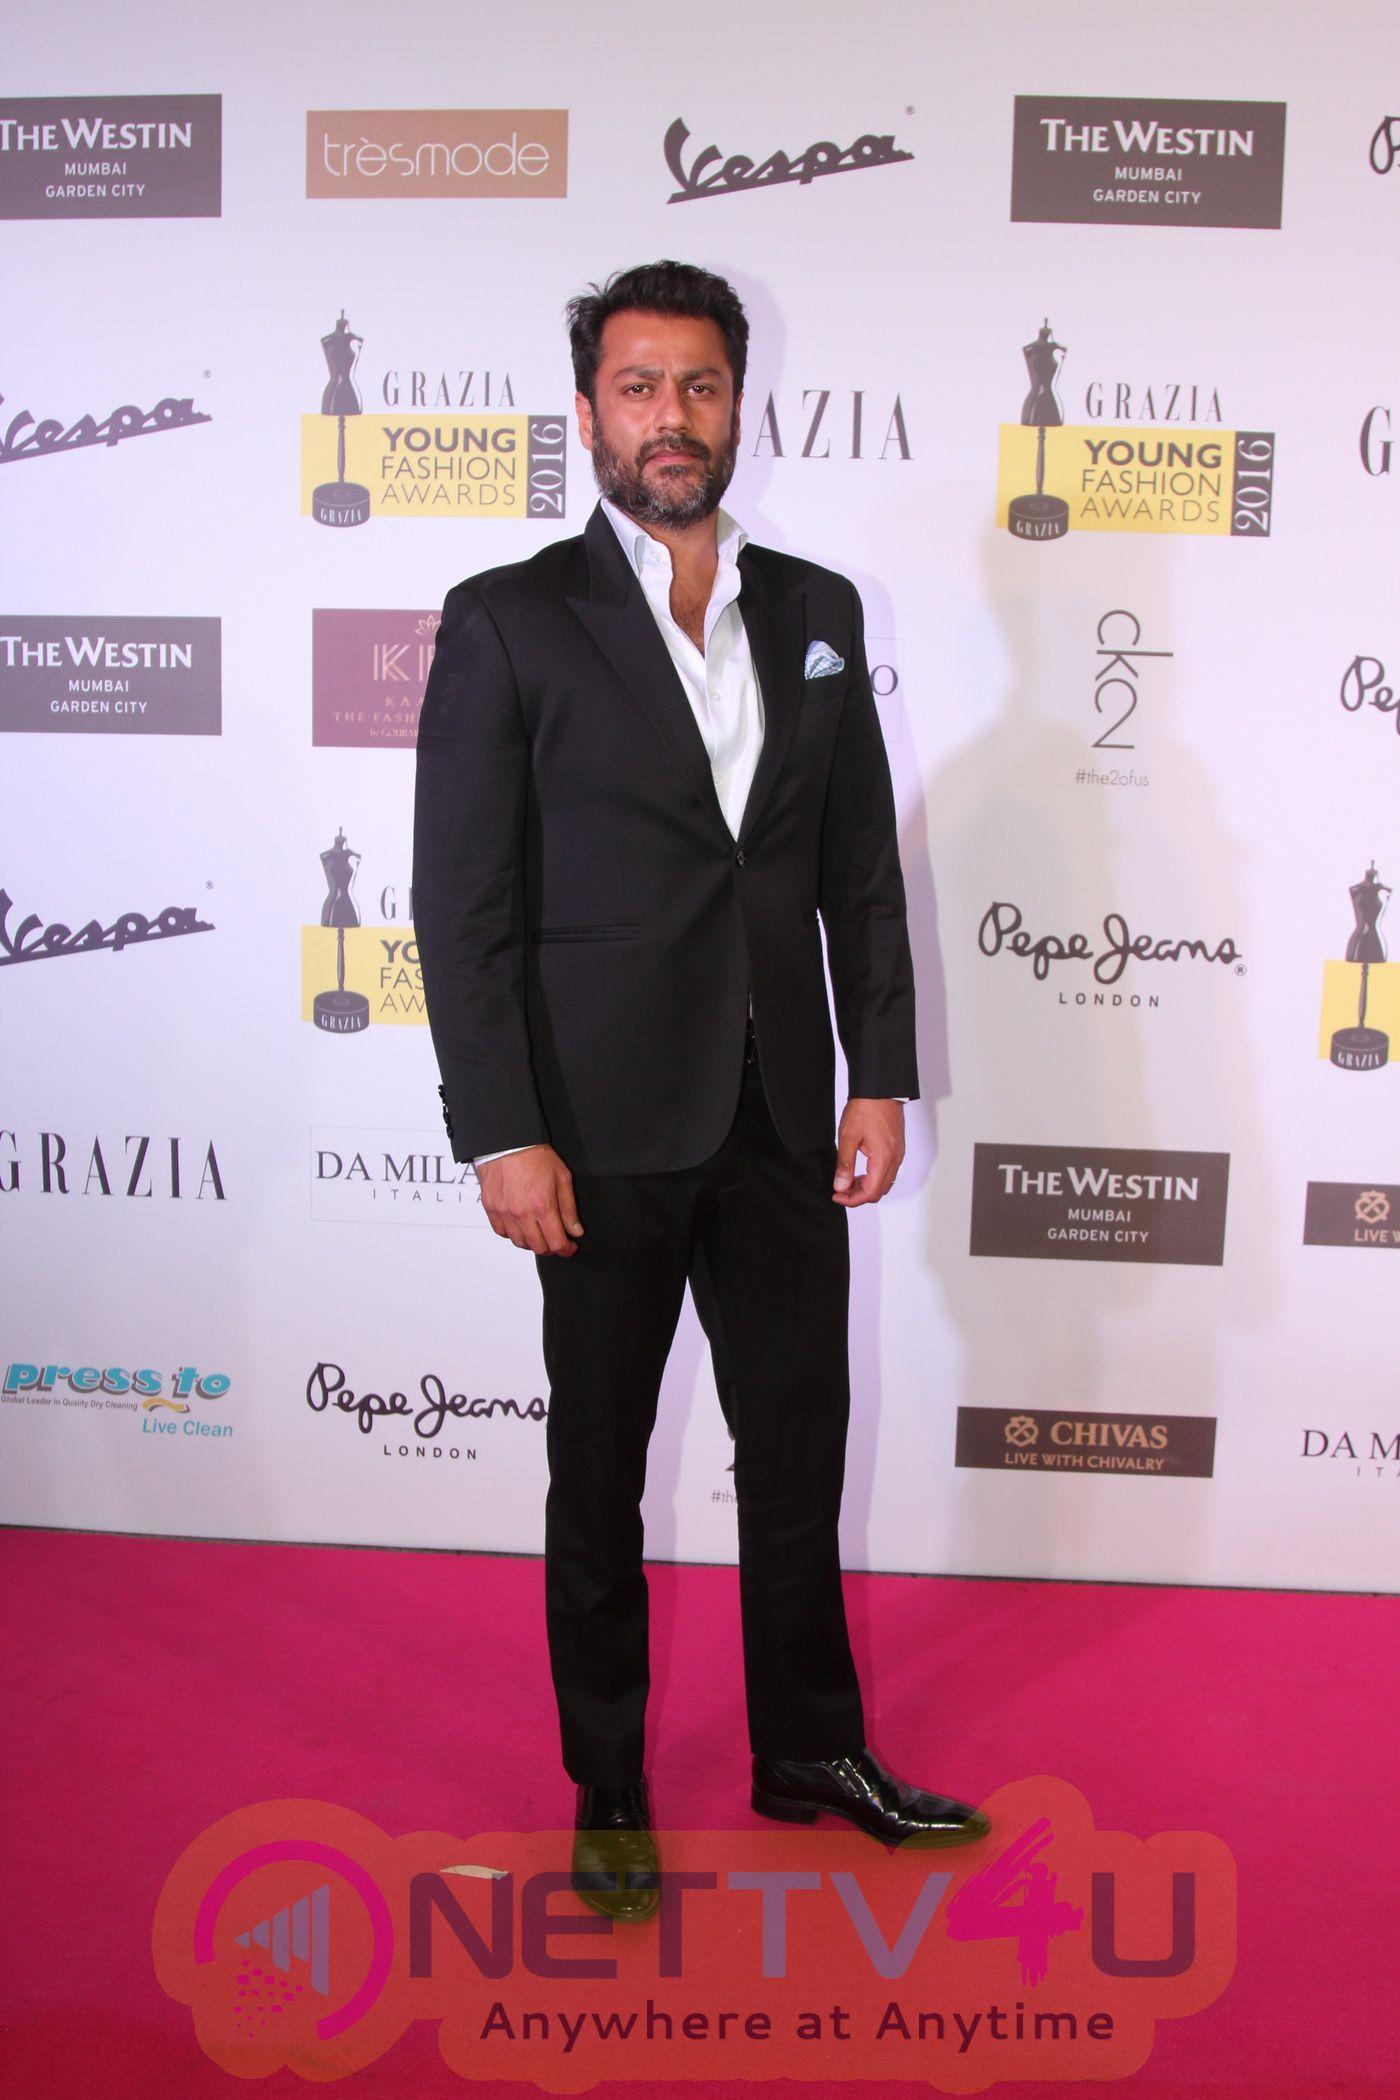 Photos Of Celebrities At The Red Carpet Of 6Th Edition Of The Grazia Young Fashion Awards Held At Westin Mumbai